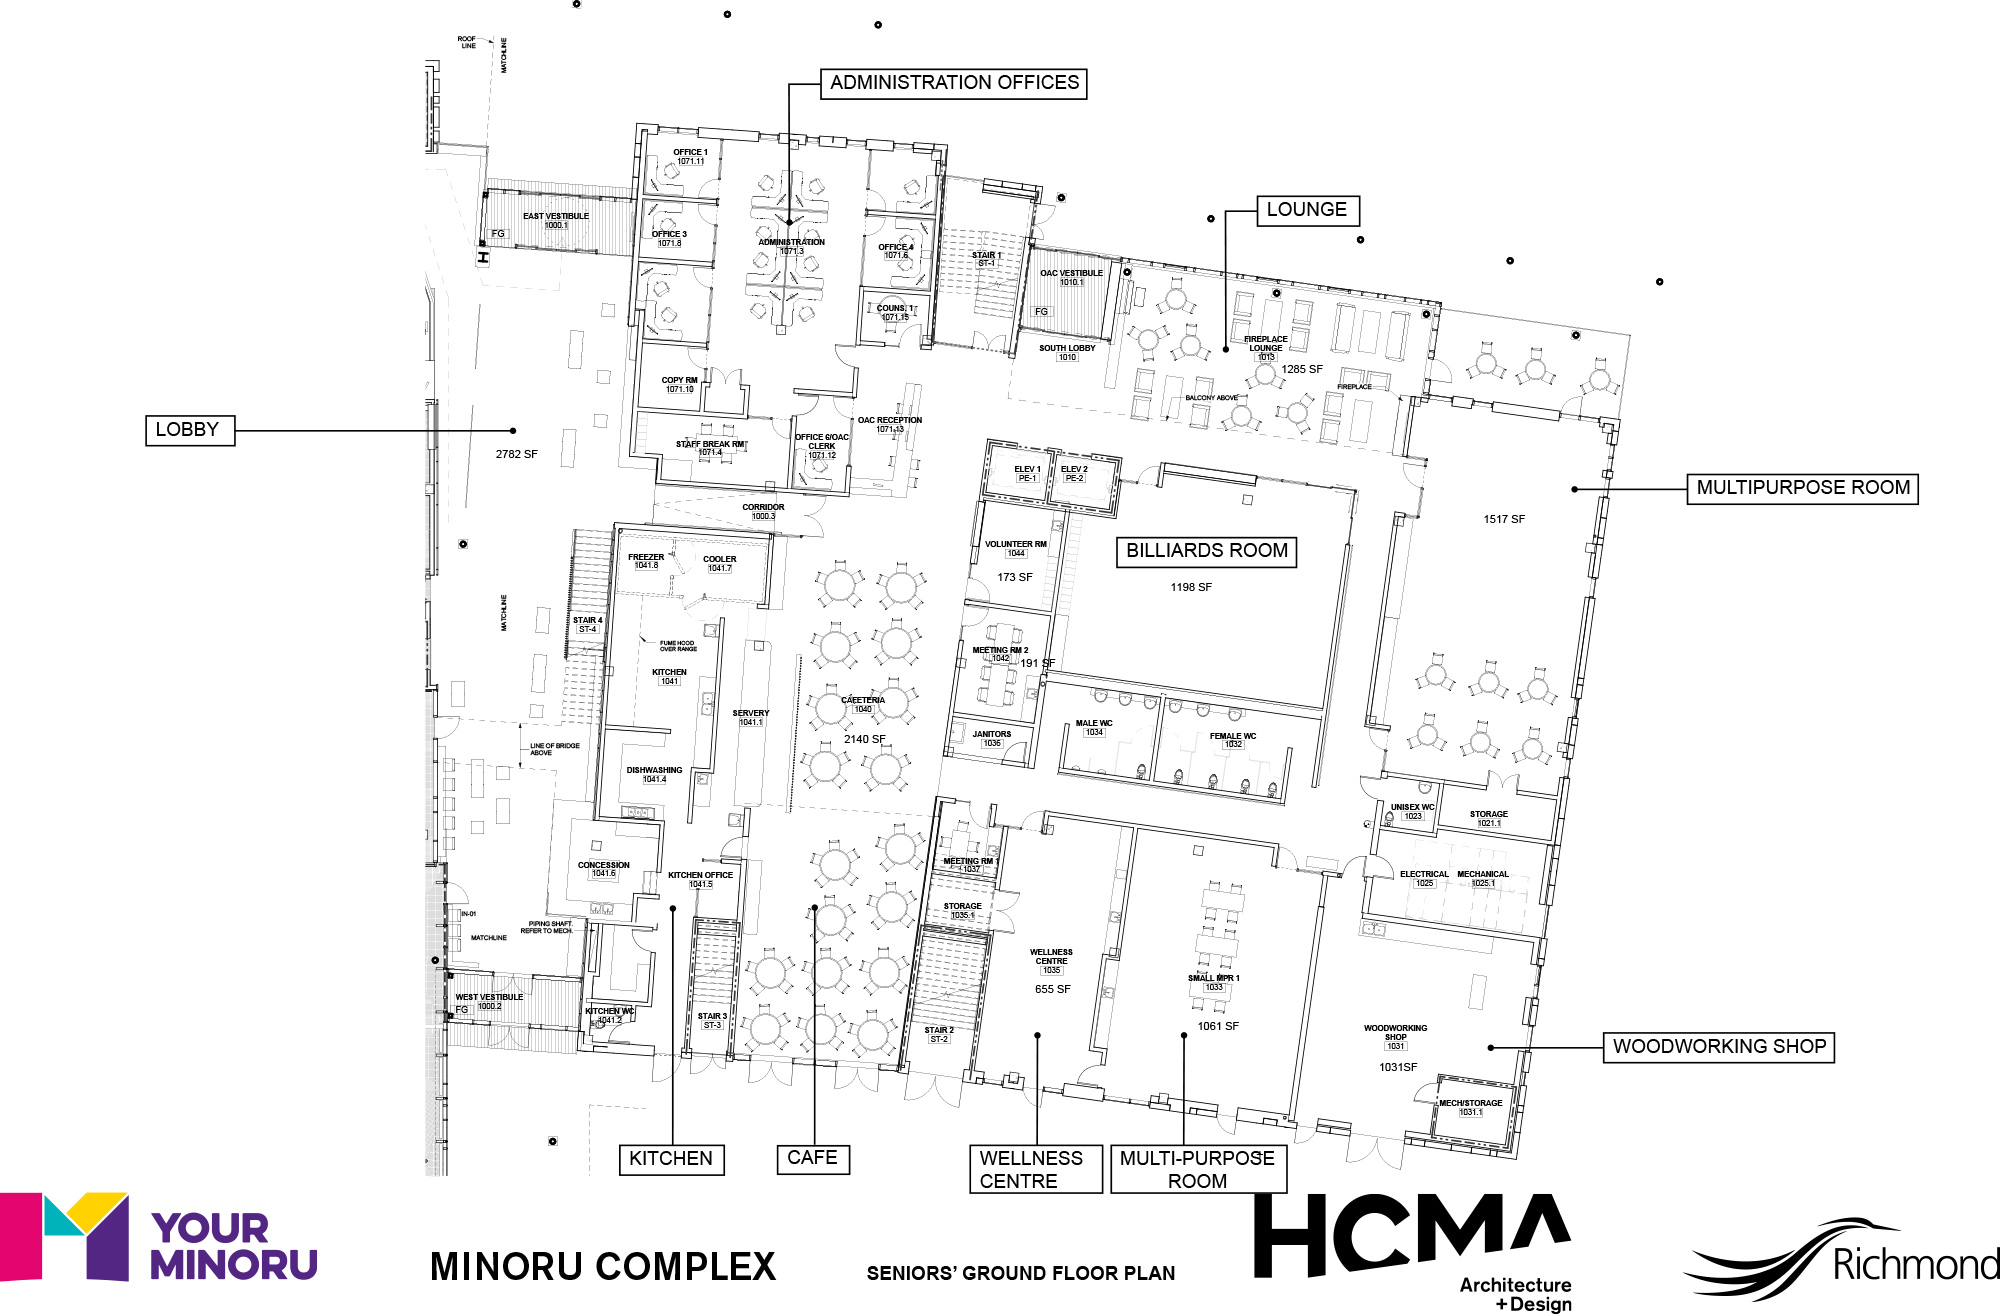 Minoru Complex - Seniors Ground Floor Plan - January 2016